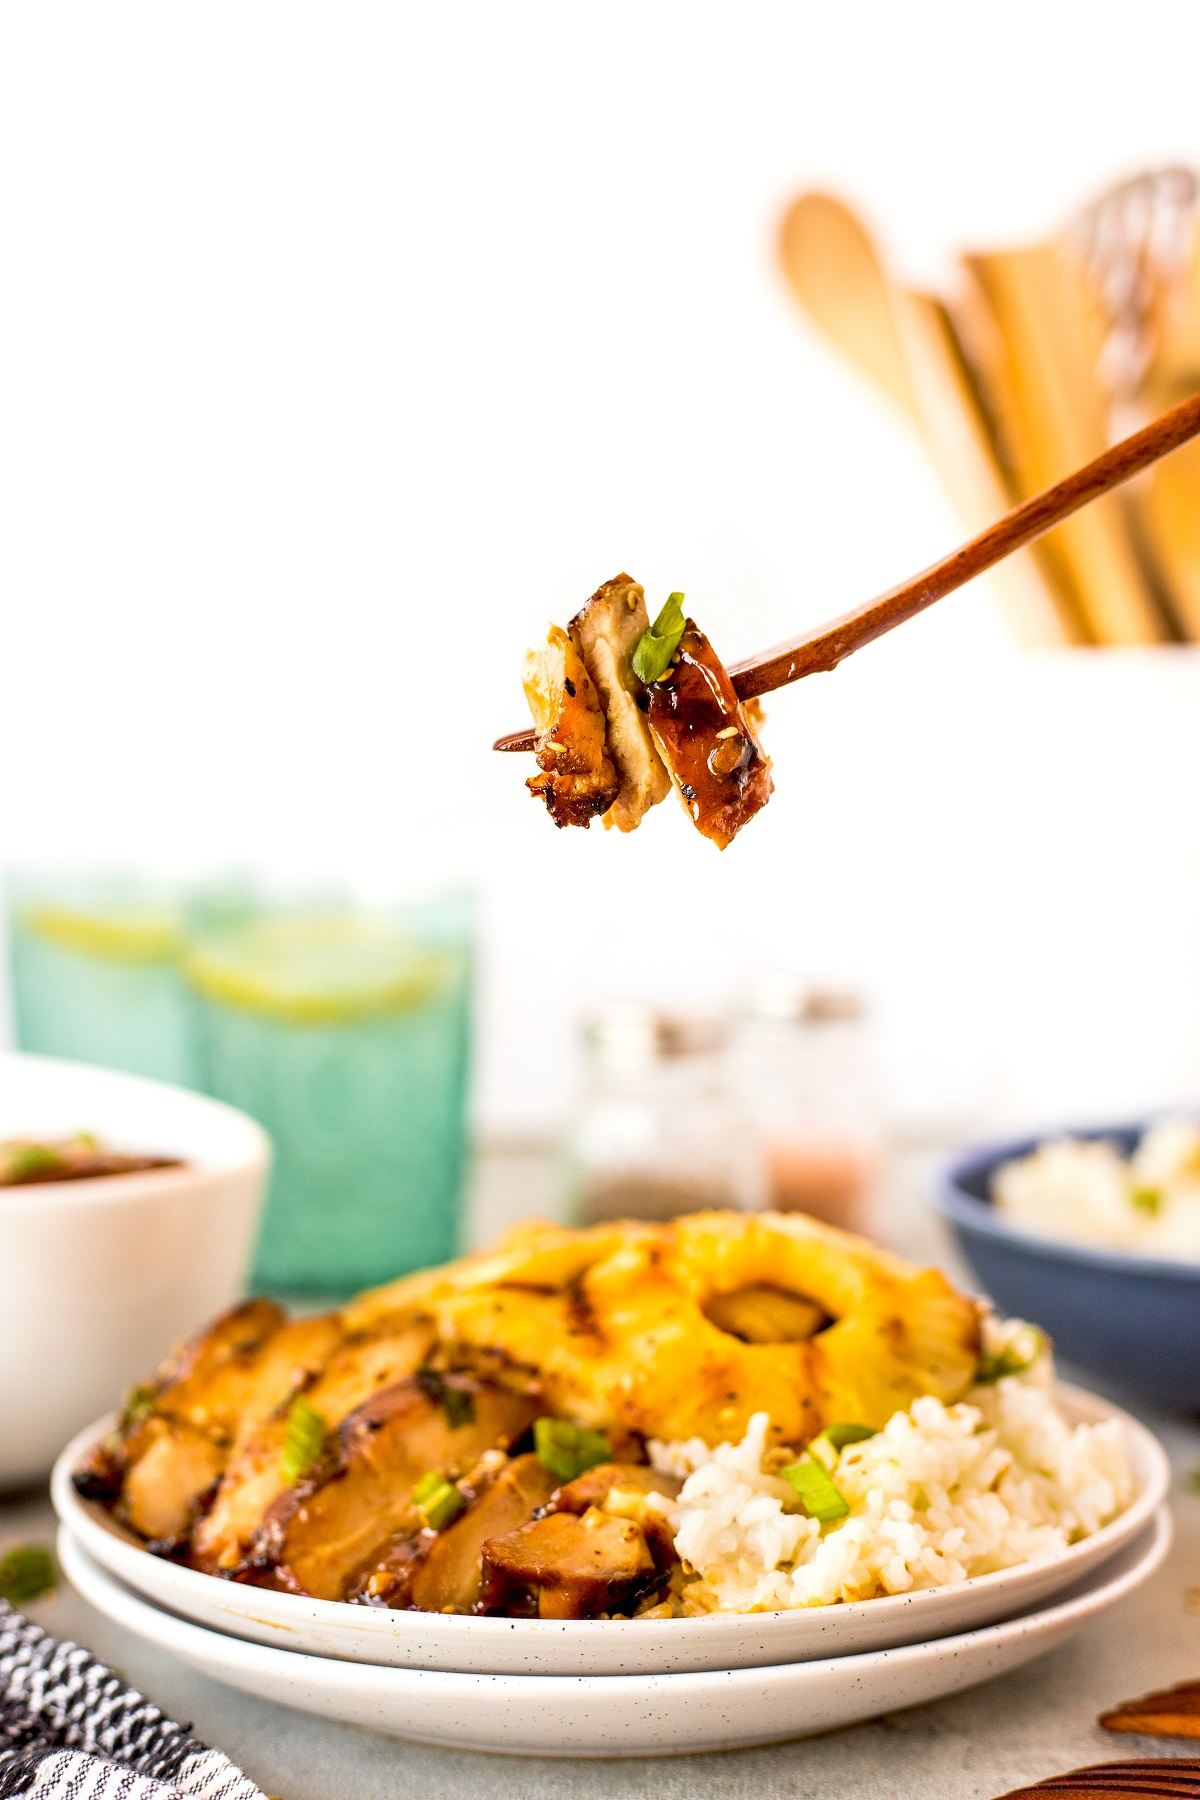 Hawaiian grilled chicken bite on a fork with the sliced grilled chicken, rice and grilled pineapple on the plate below.